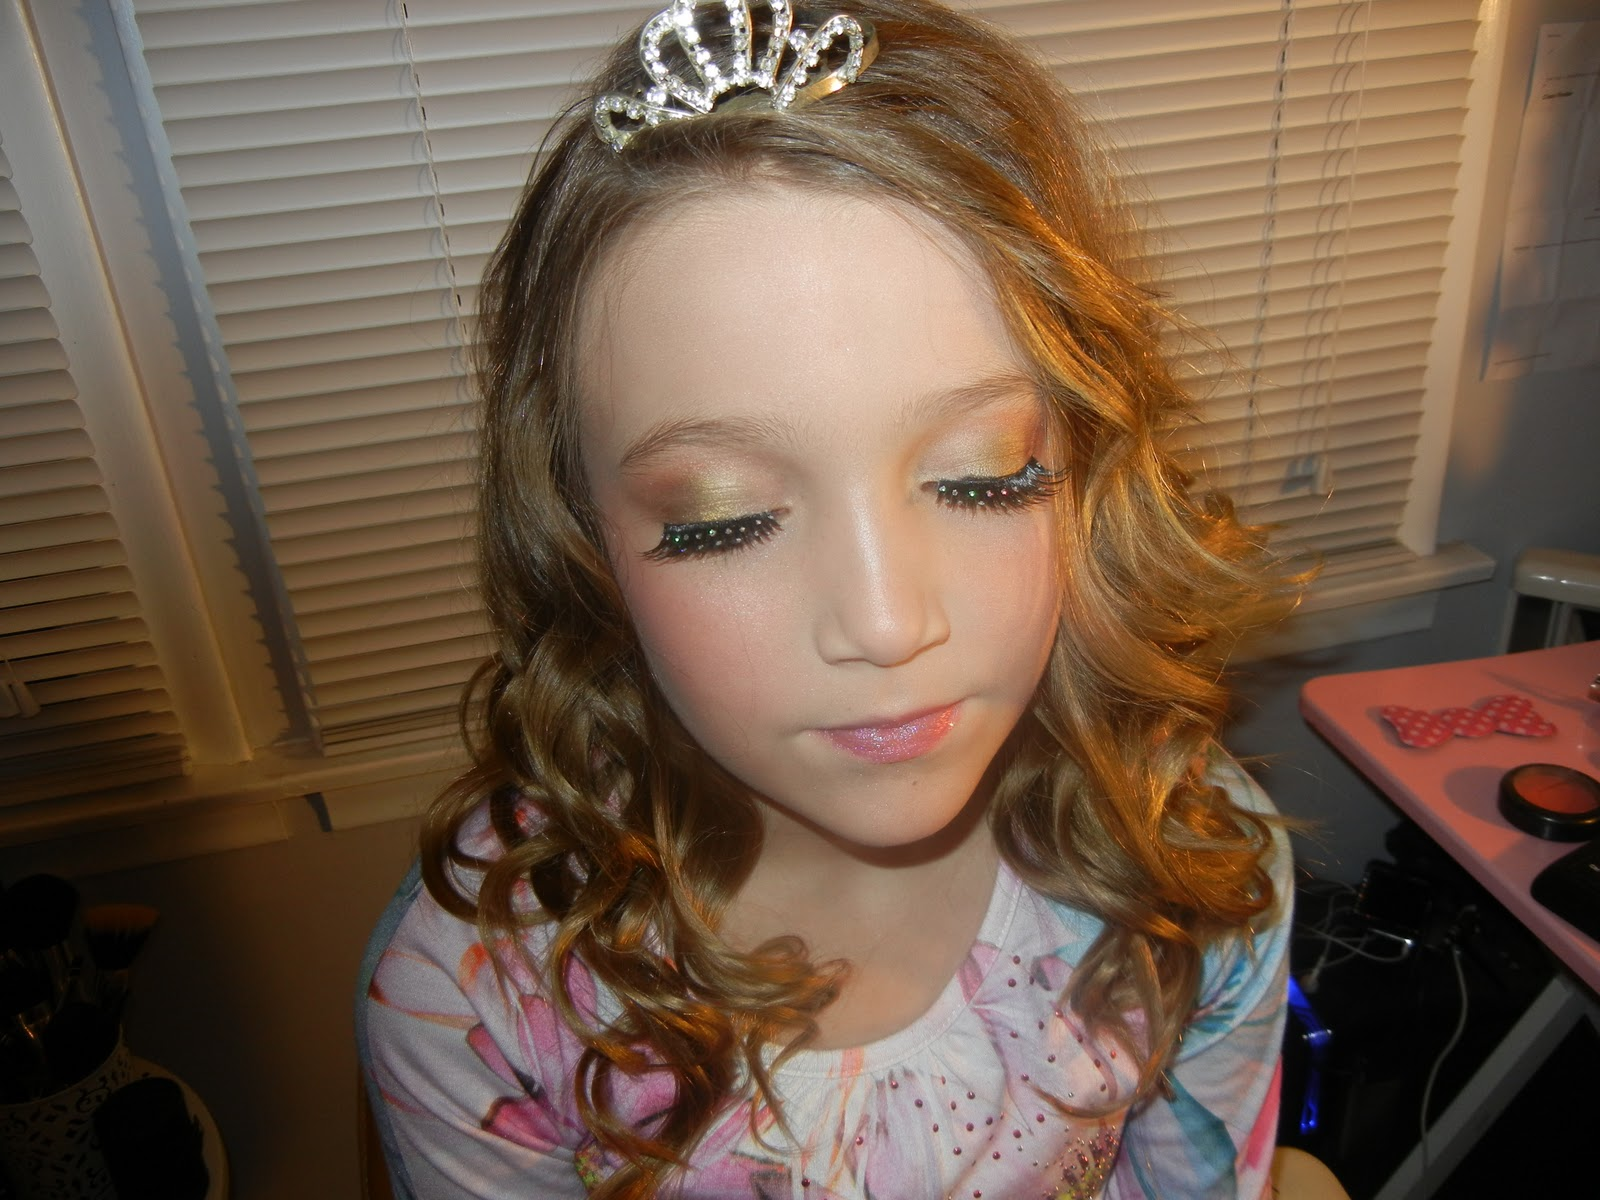 Toddlers and Tiaras inspired makeup and hair transformation. 1600 x 1200.Hairstyles For Little Girls Beauty Pageant